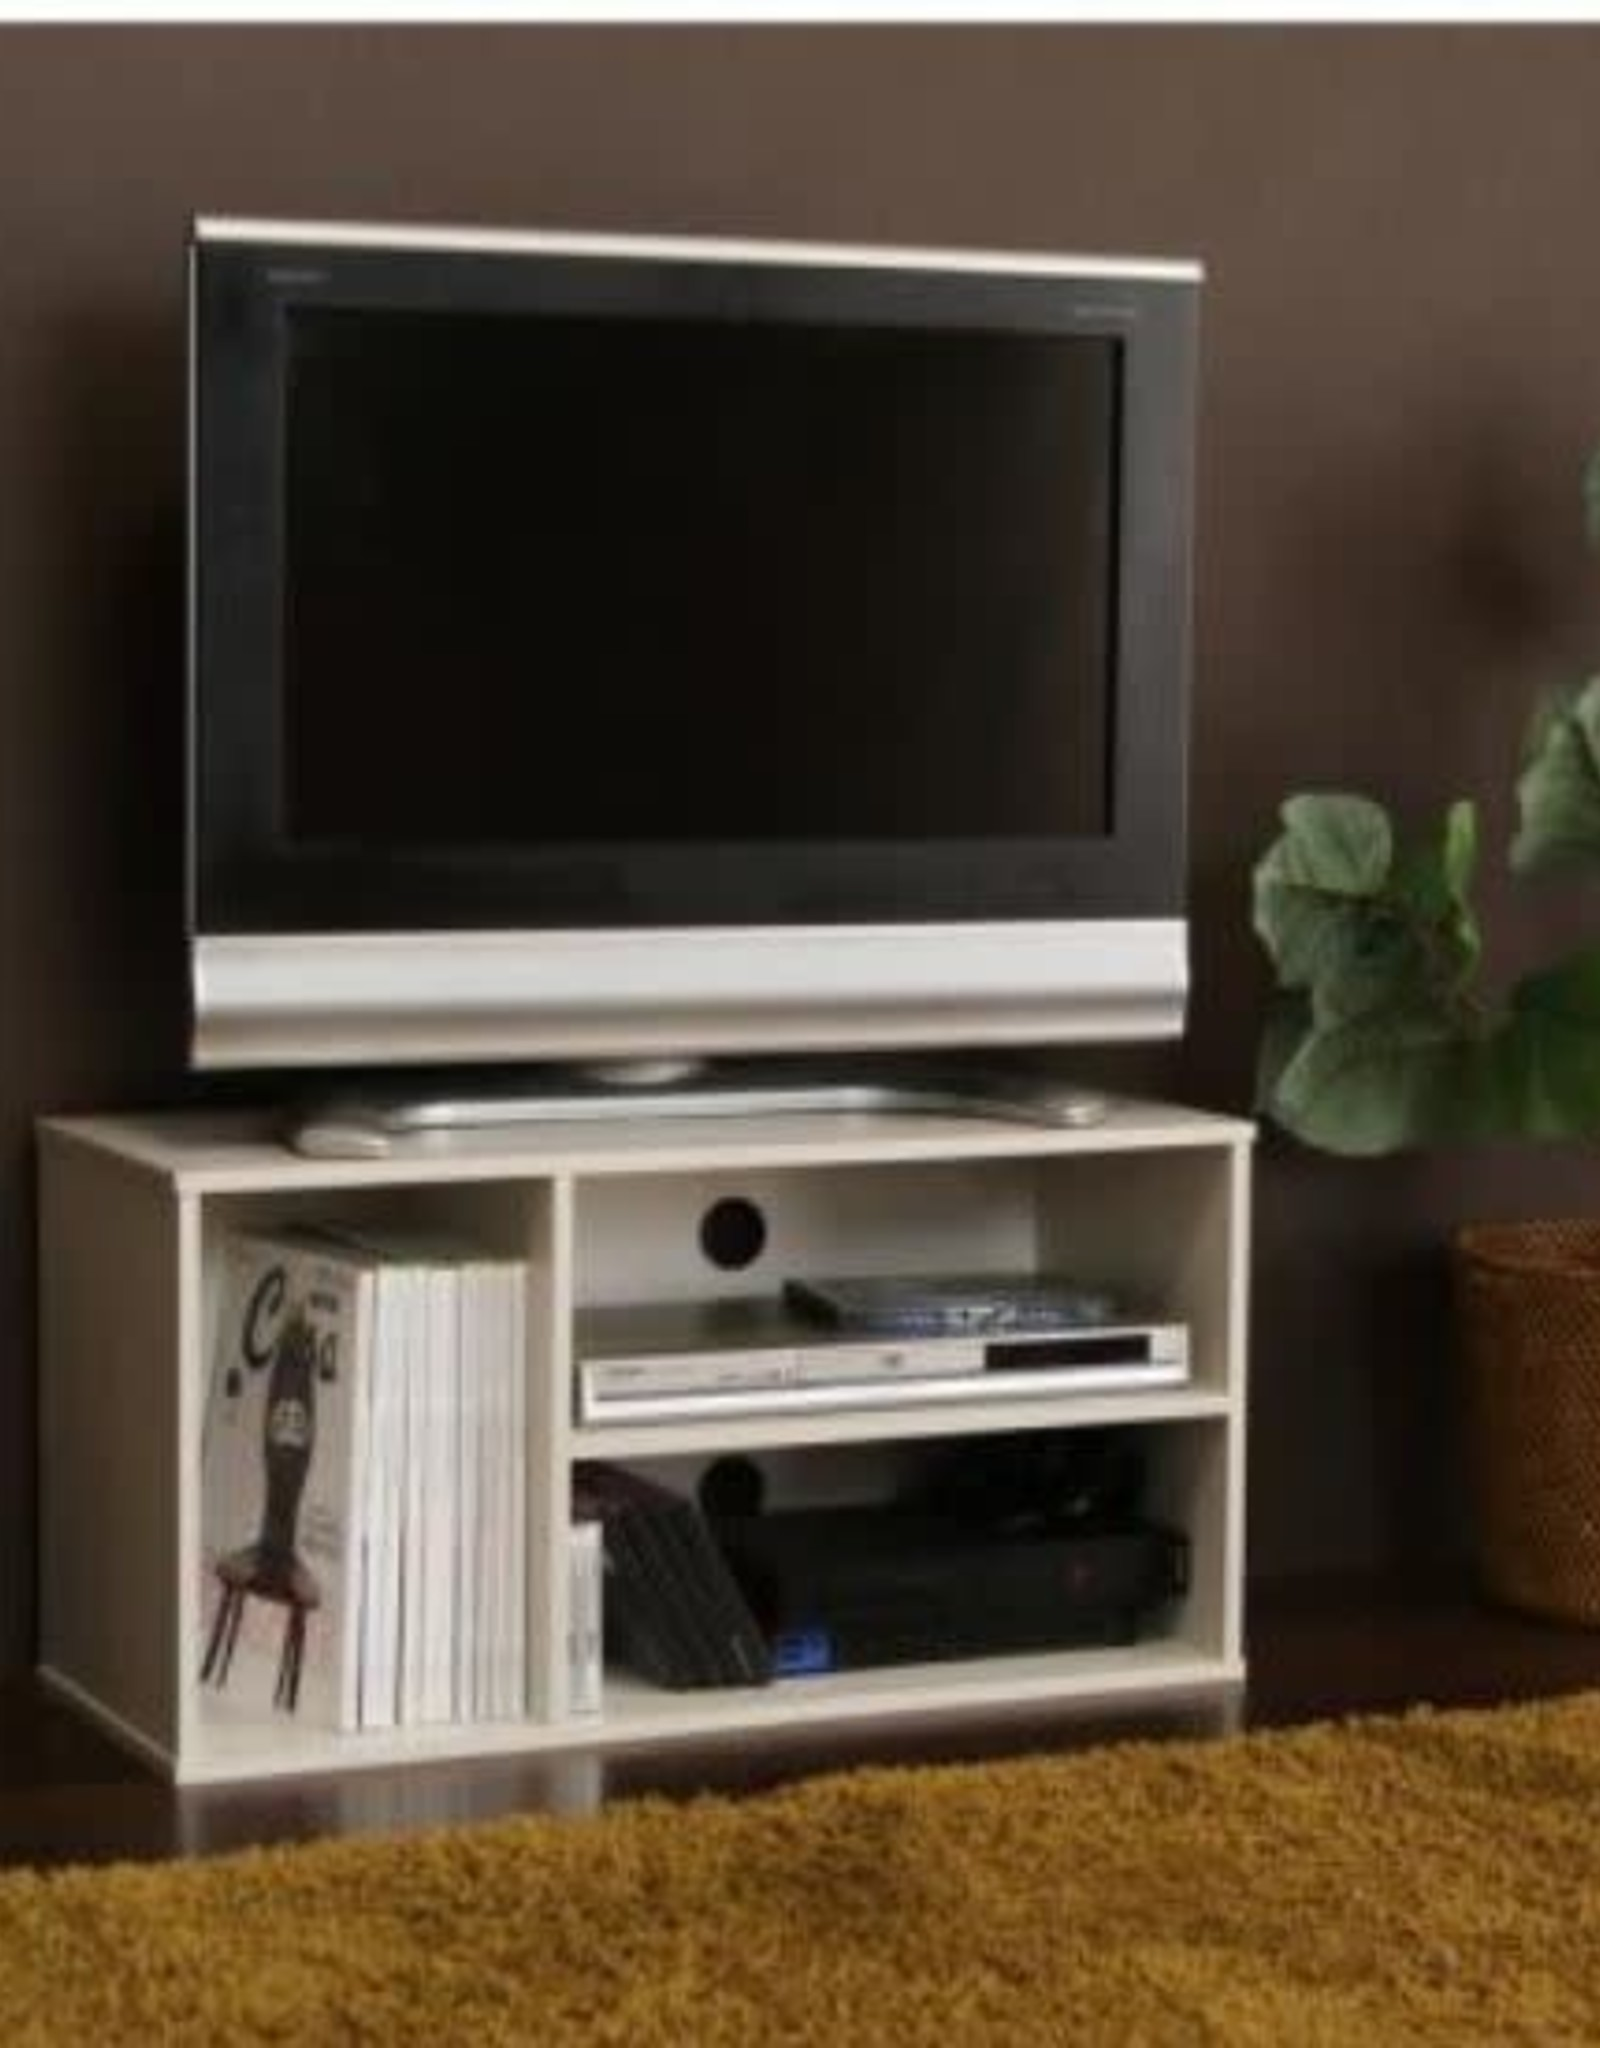 IRIS USA INC 11 in. White Particle Board TV Stand Fits TVs Up to 32 in. with Cable Management